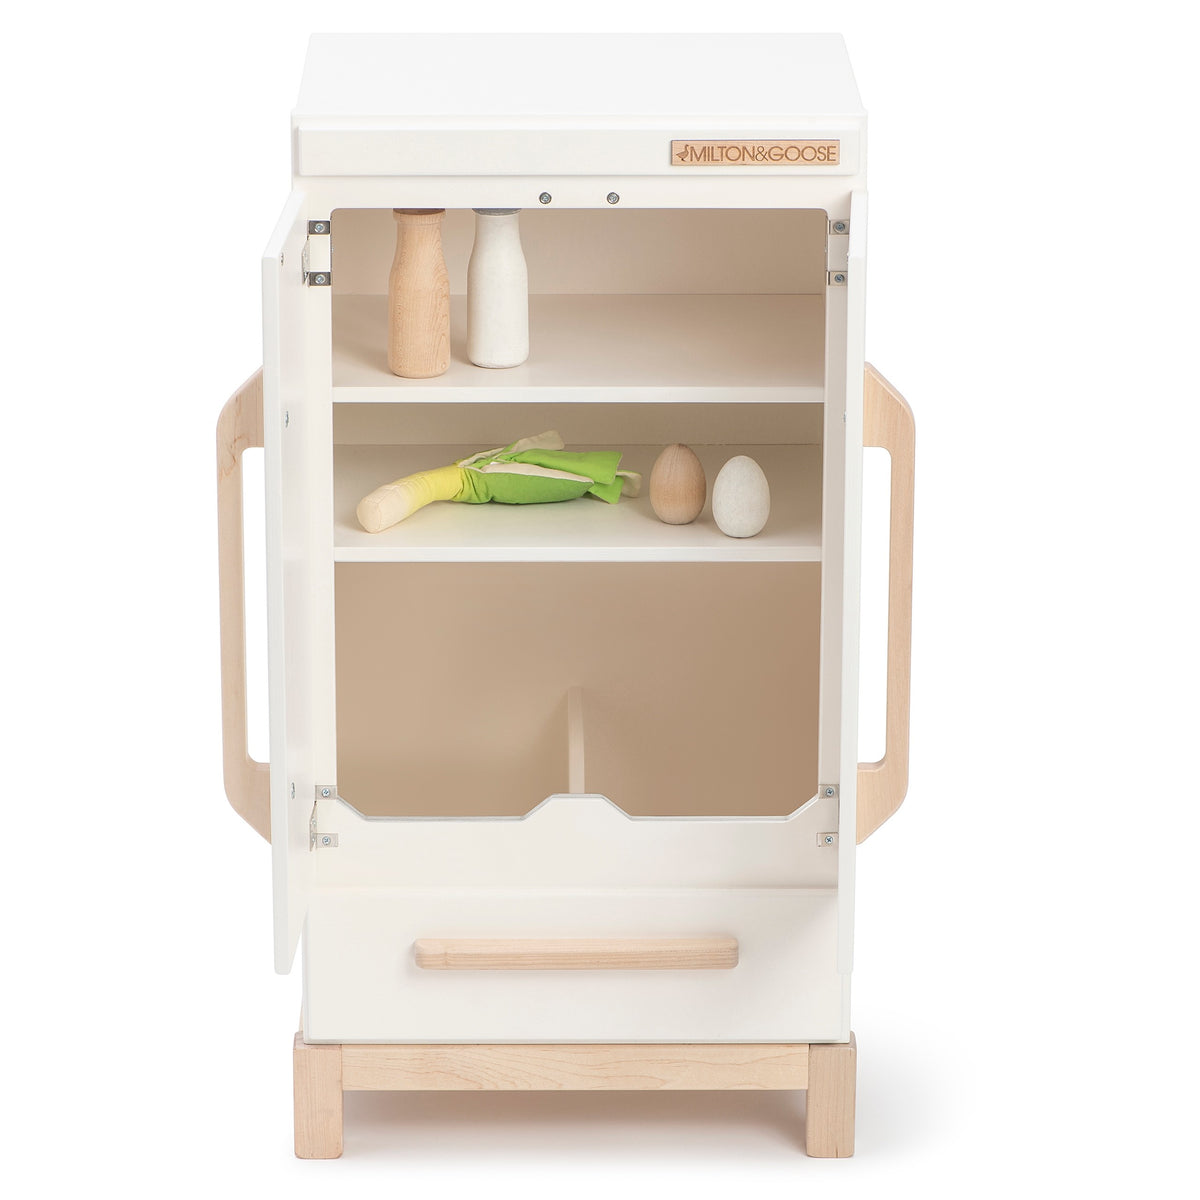 Play Kitchen Fridge - Gray